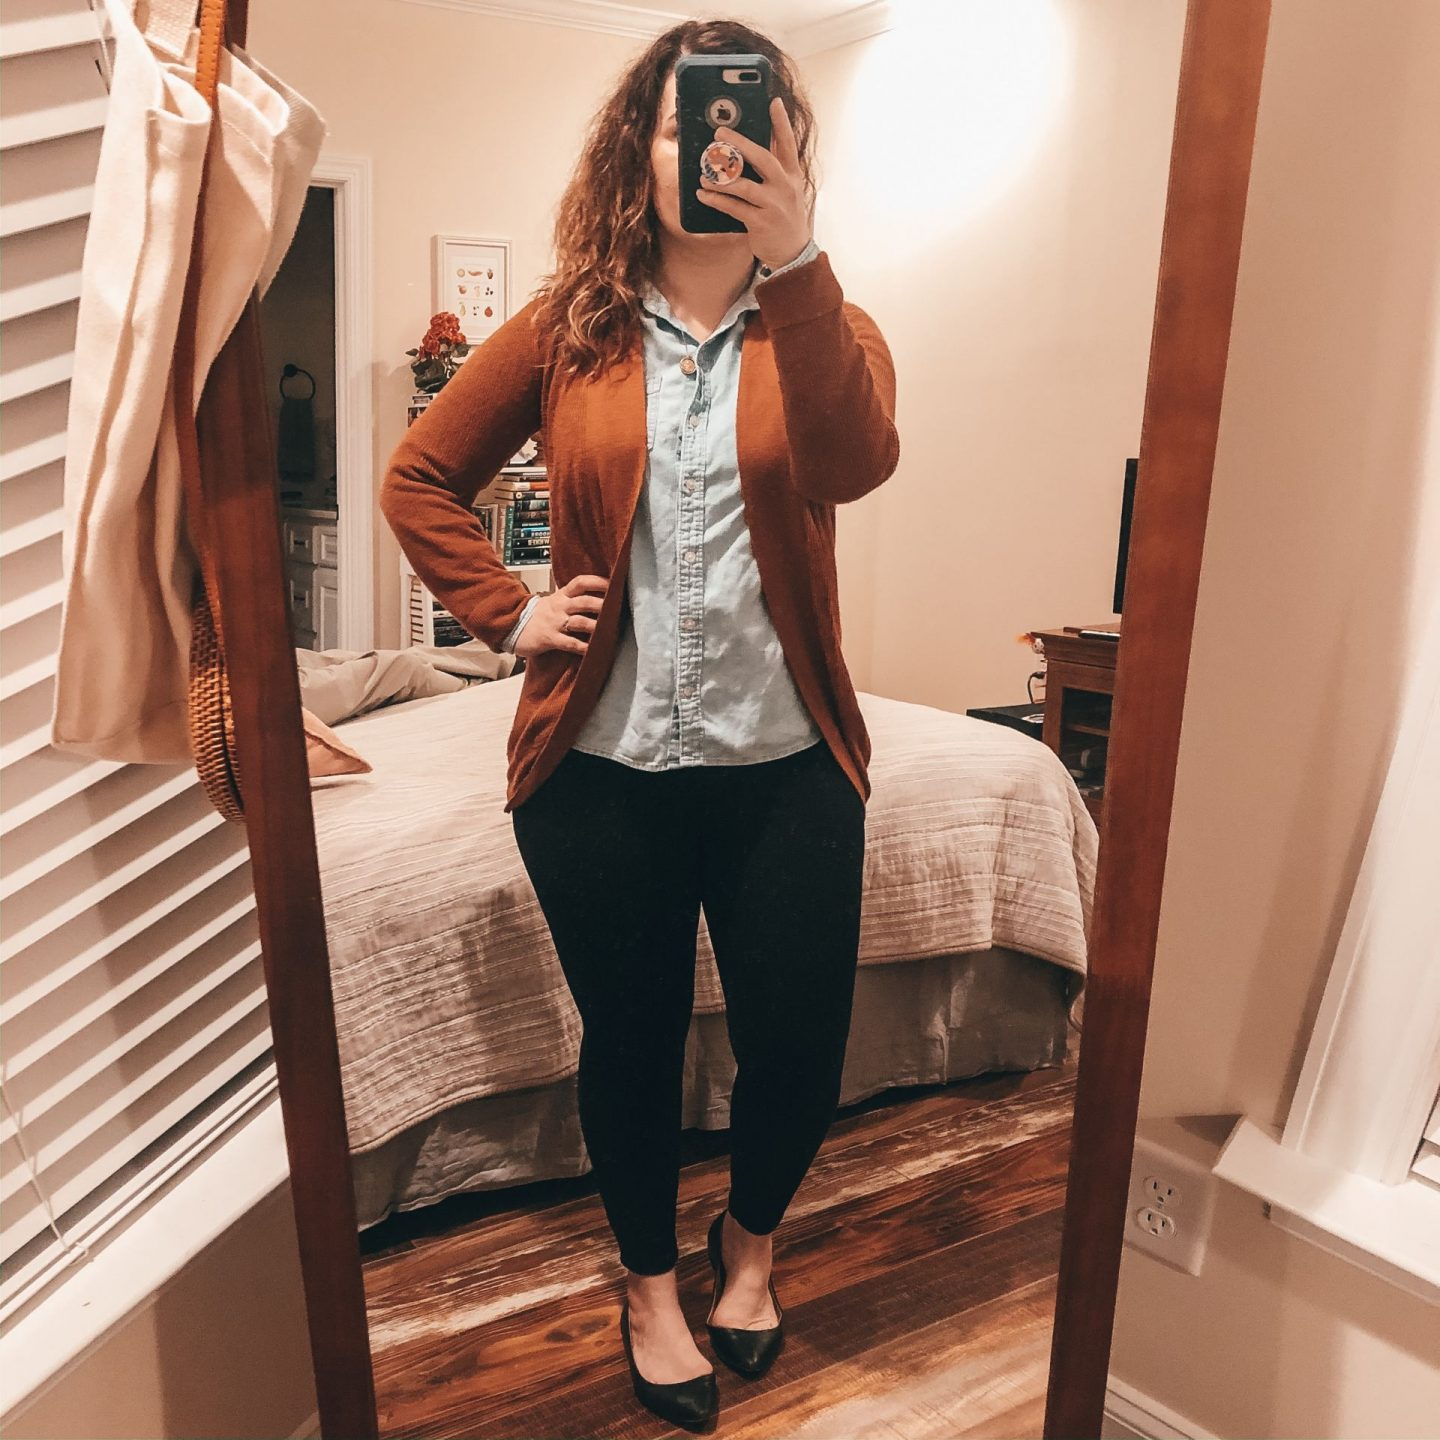 NC blogger Rebecca Lately is sharing her recent outfits from Instagram.  Check this out for fall outfit inspo if you love the colors rust and cognac.